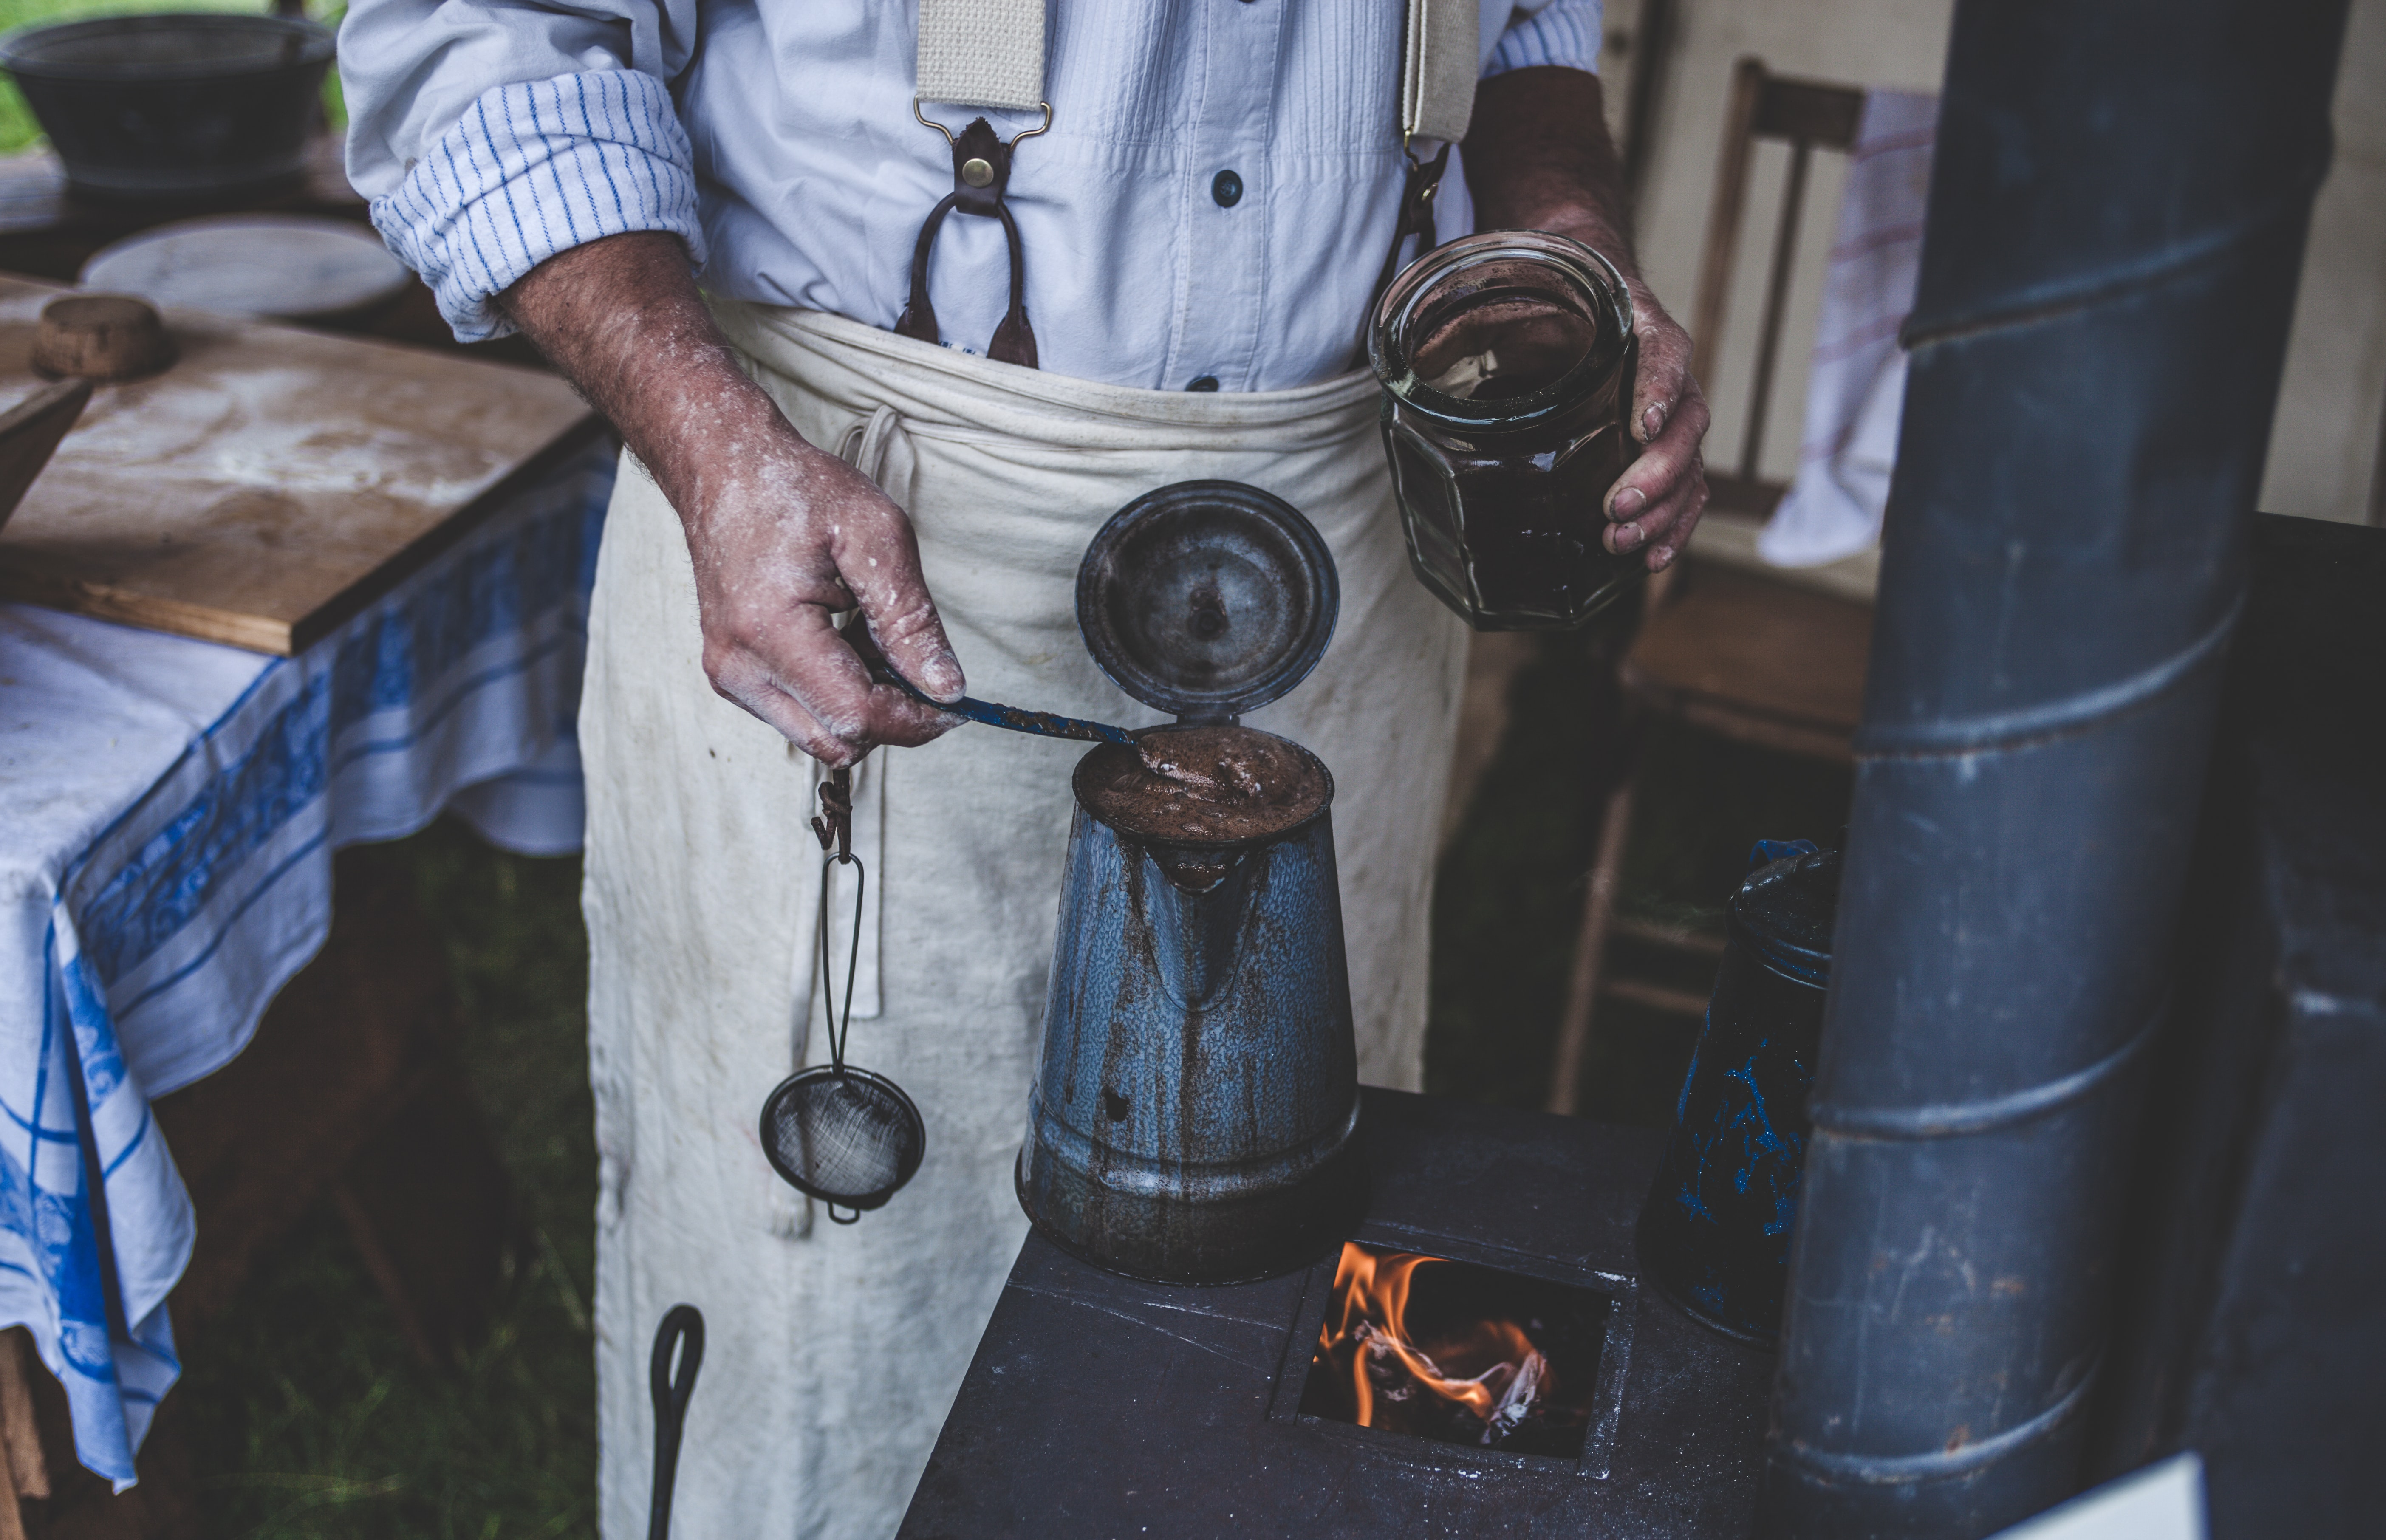 A person making coffee in an old pot on a wood-burning stove